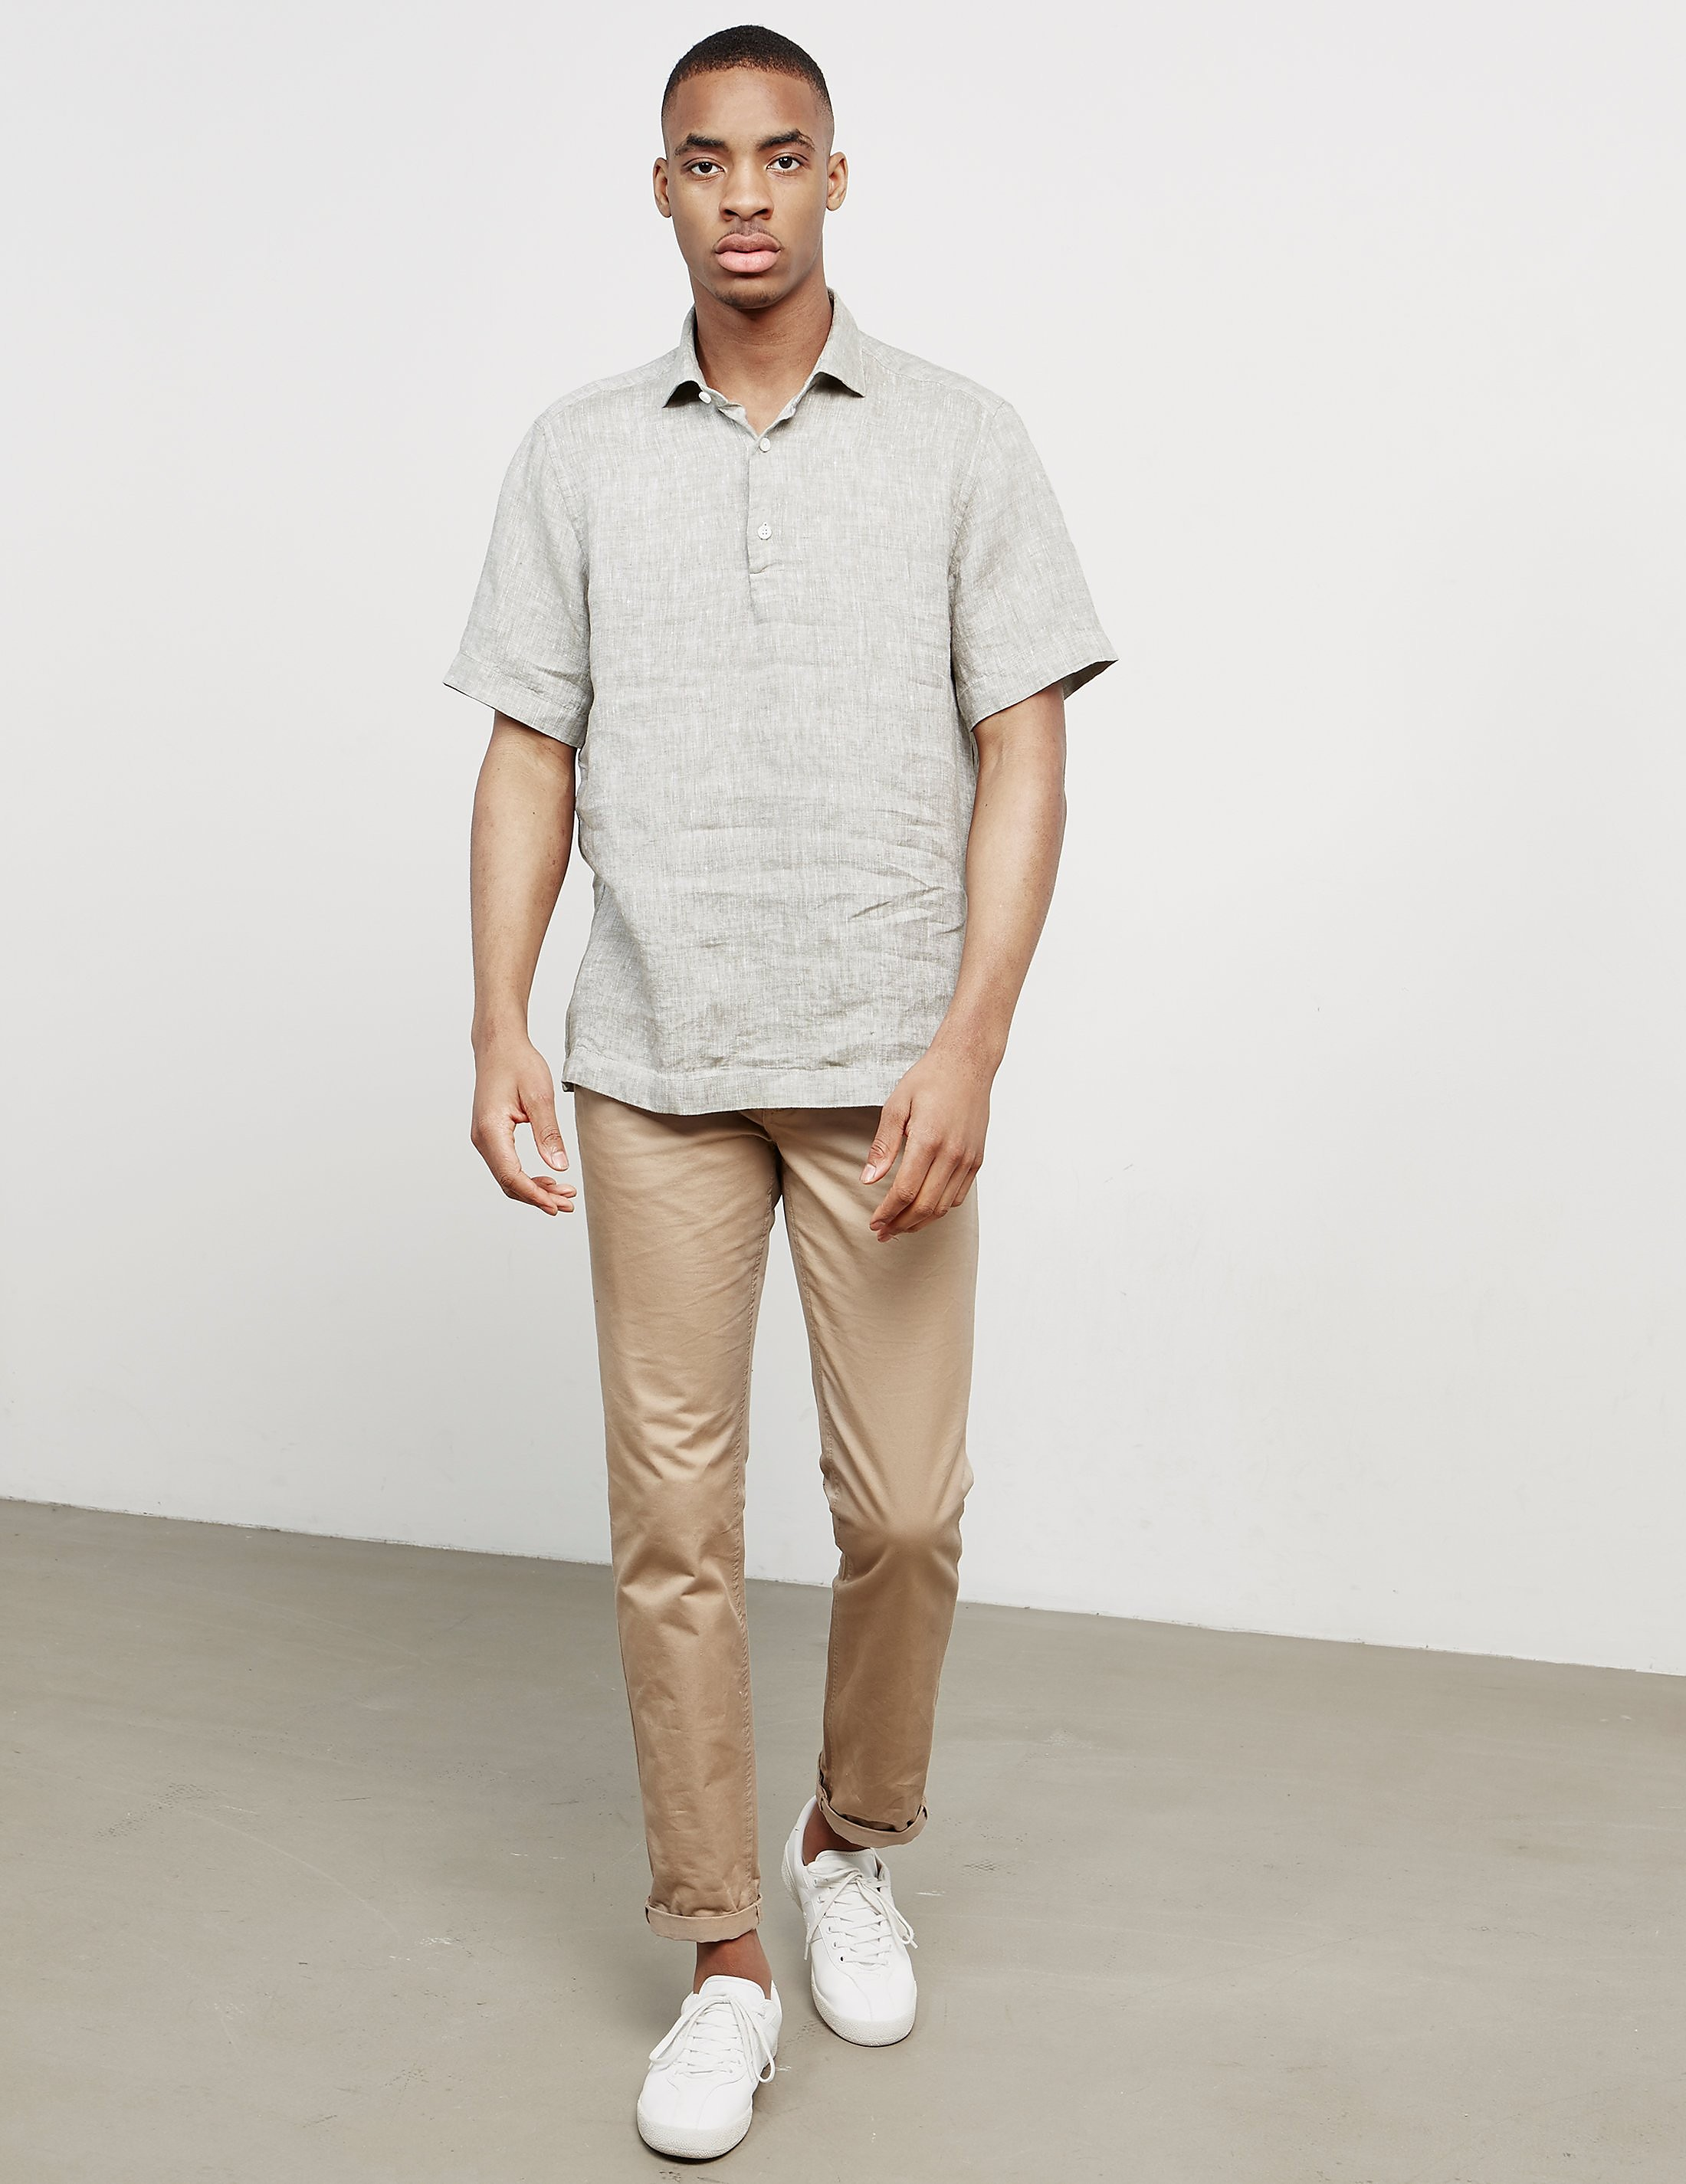 Z Zegna Linen Short Sleeve Polo Shirt